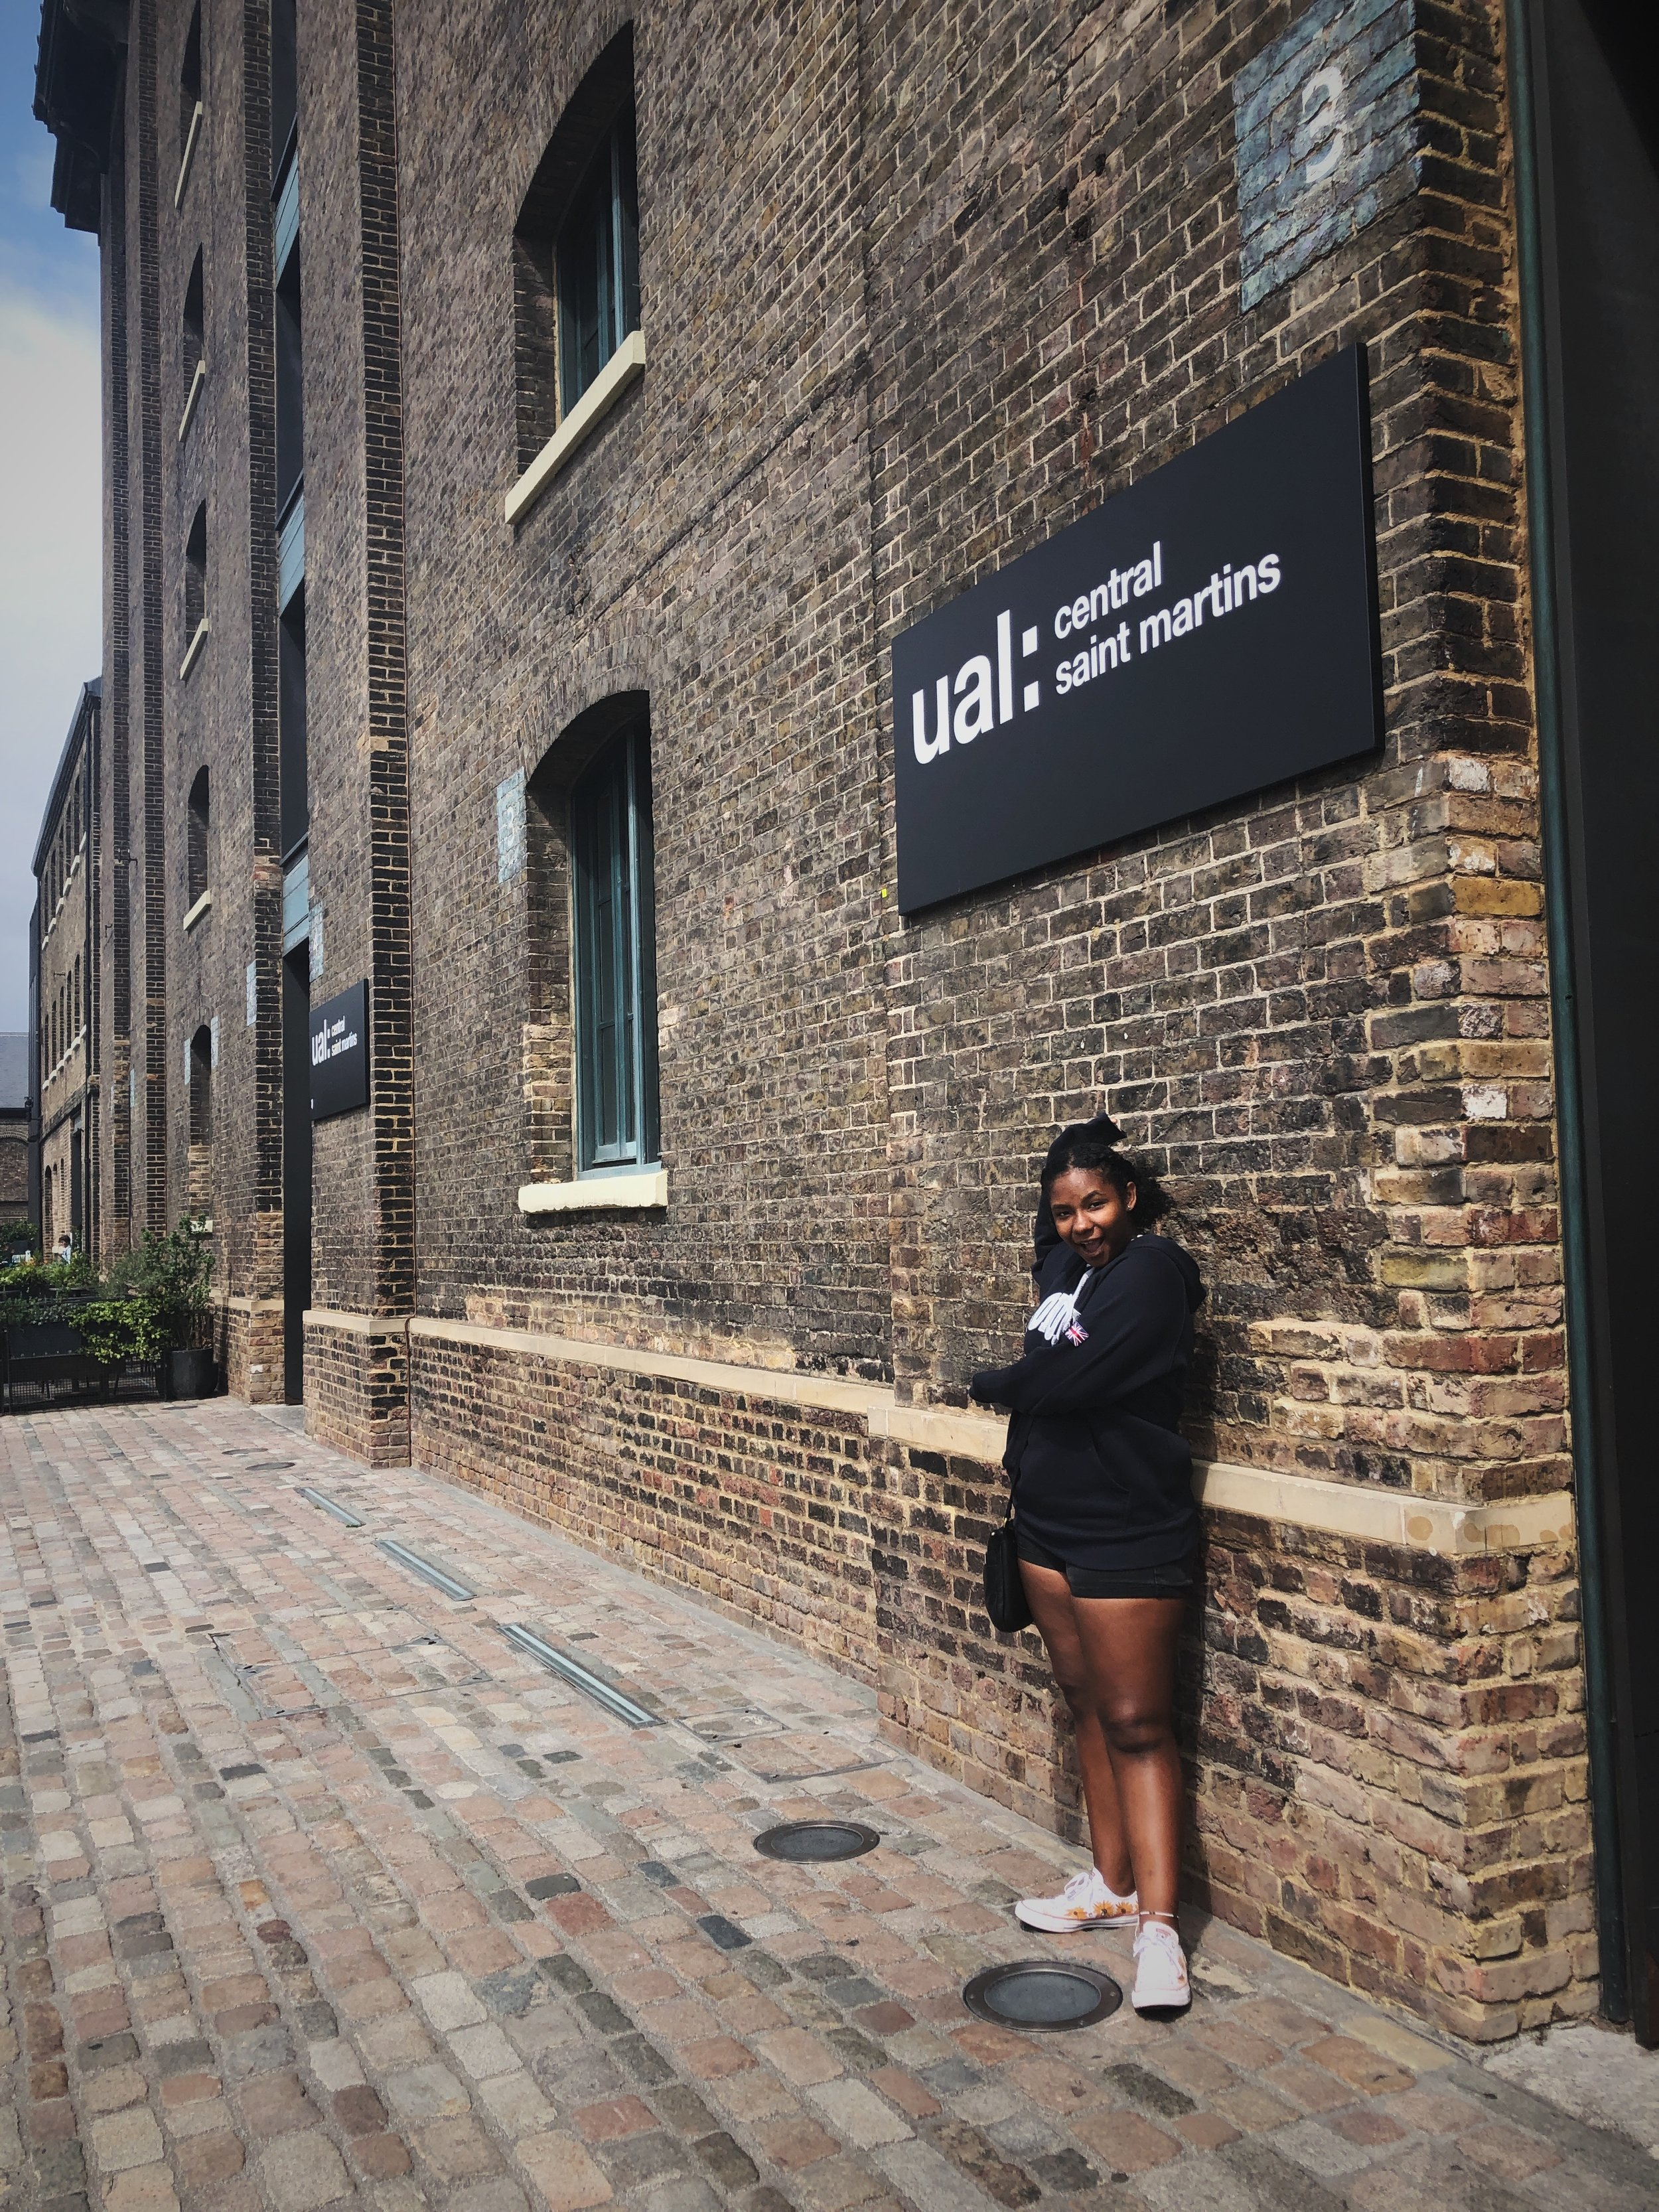 Much of the Central Saint Martins campus of the University of the Arts London was closed for the summer; however, we saw enough that Alex was interested in learning more. Definitely adding to the application list.